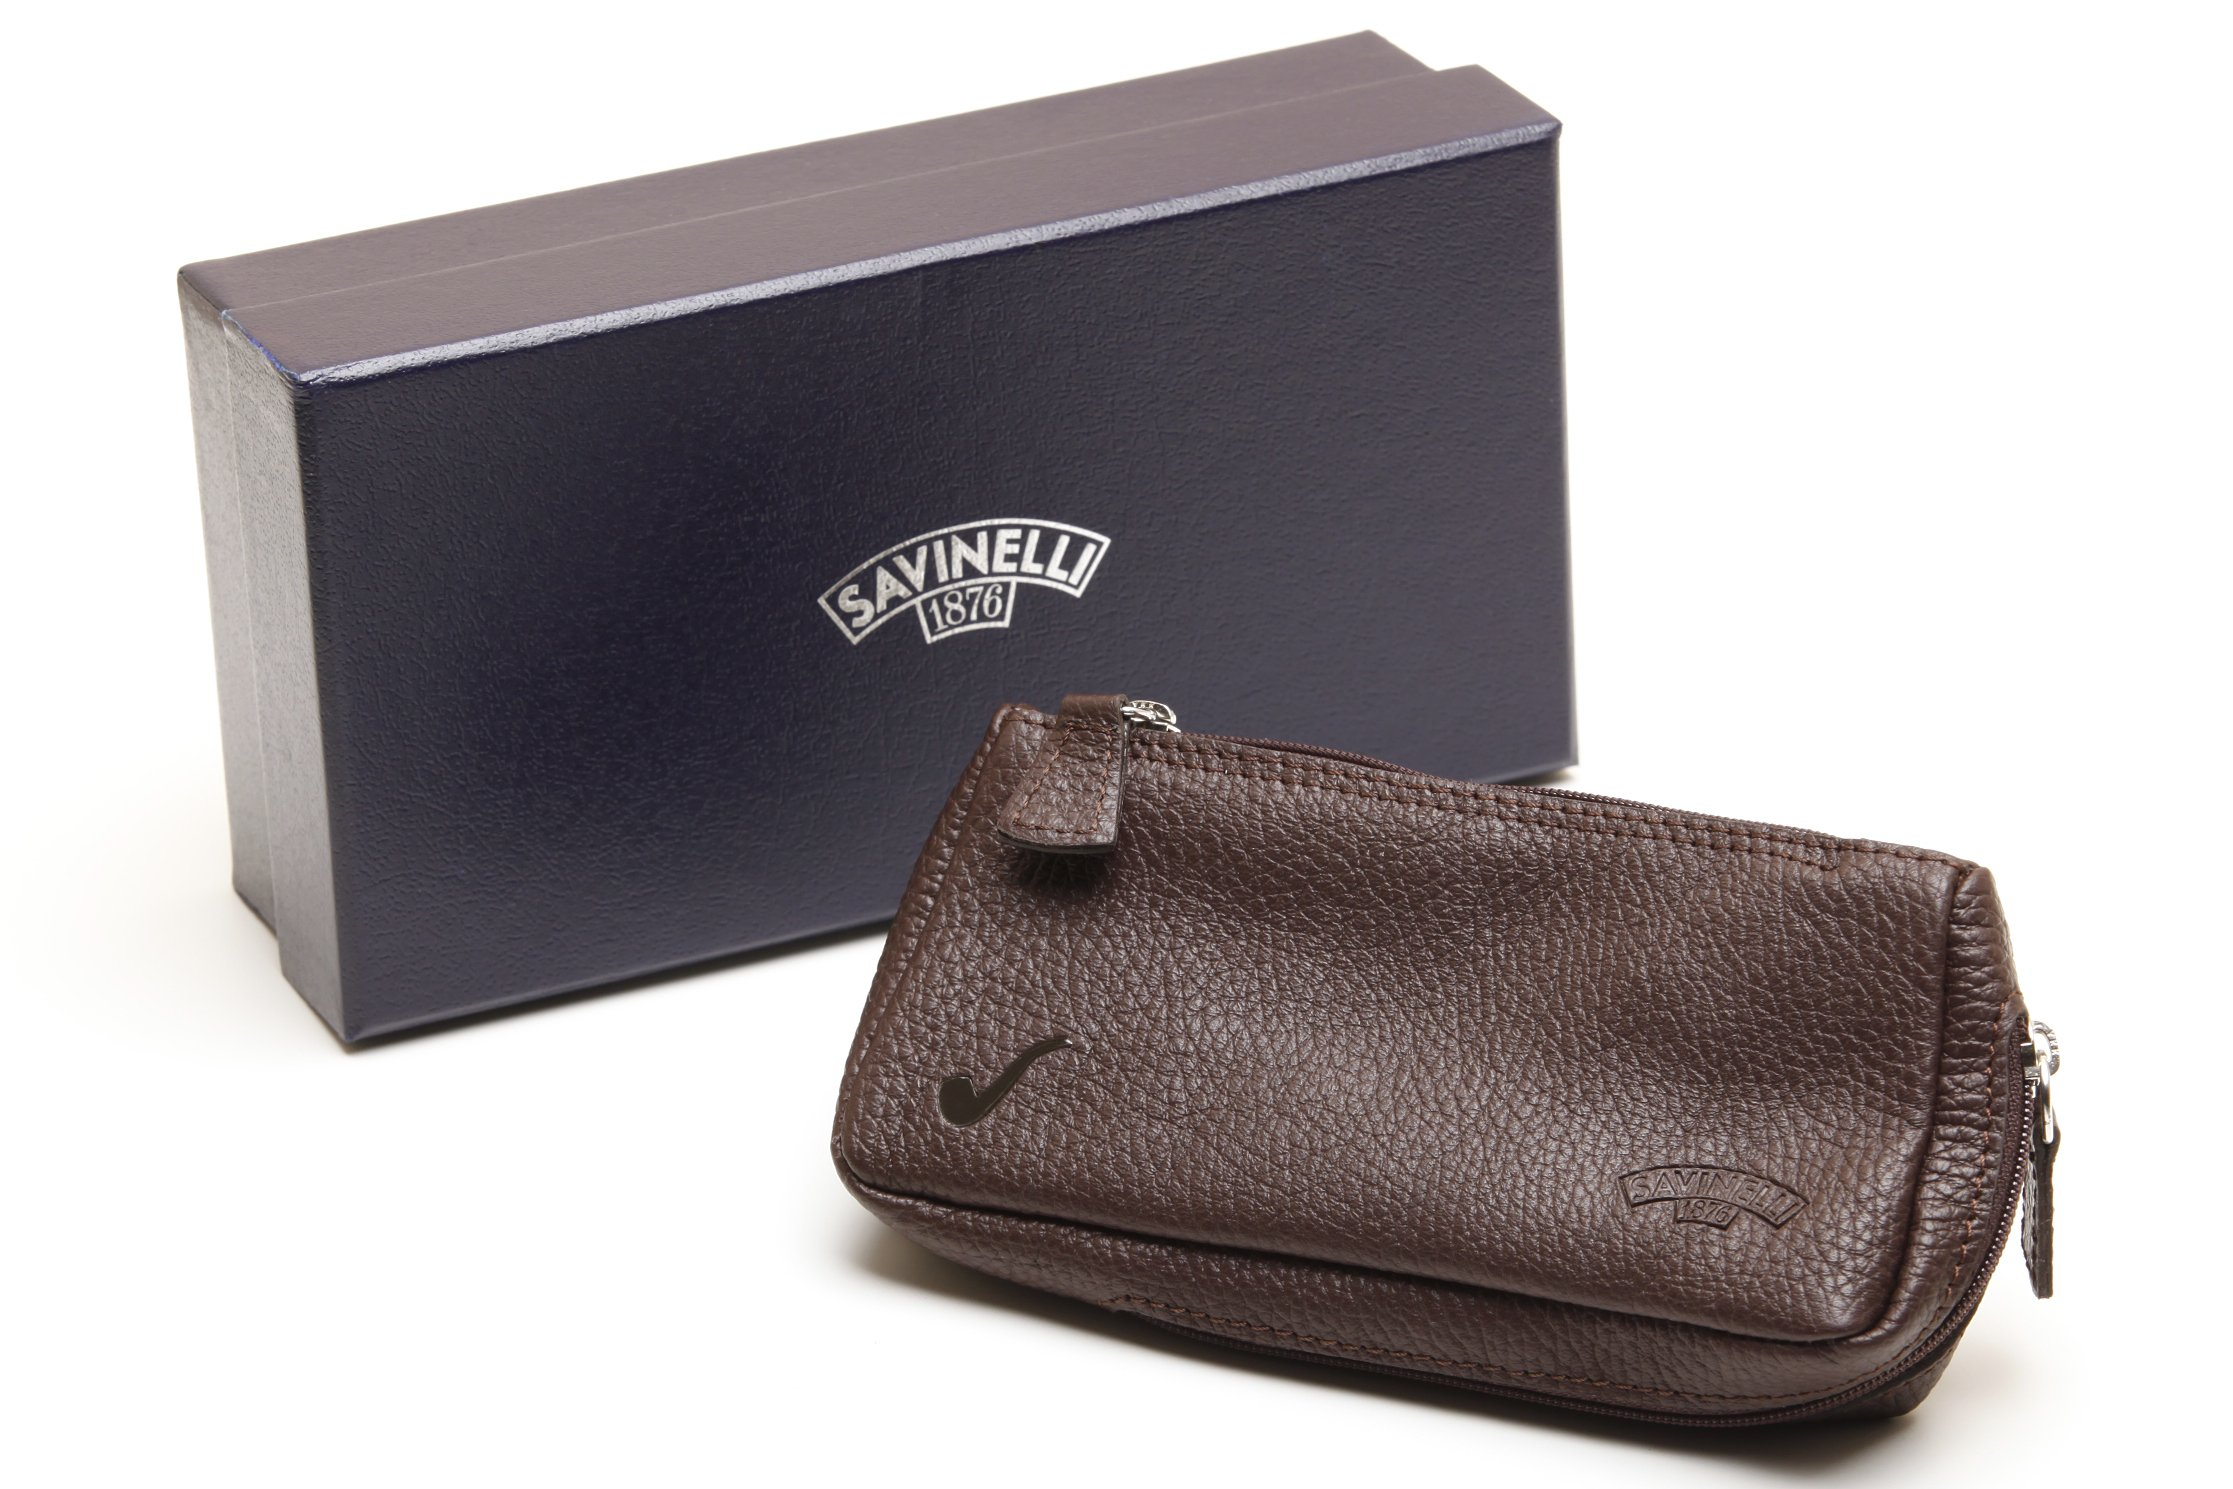 Savinelli One Pipe Pouch - Brown